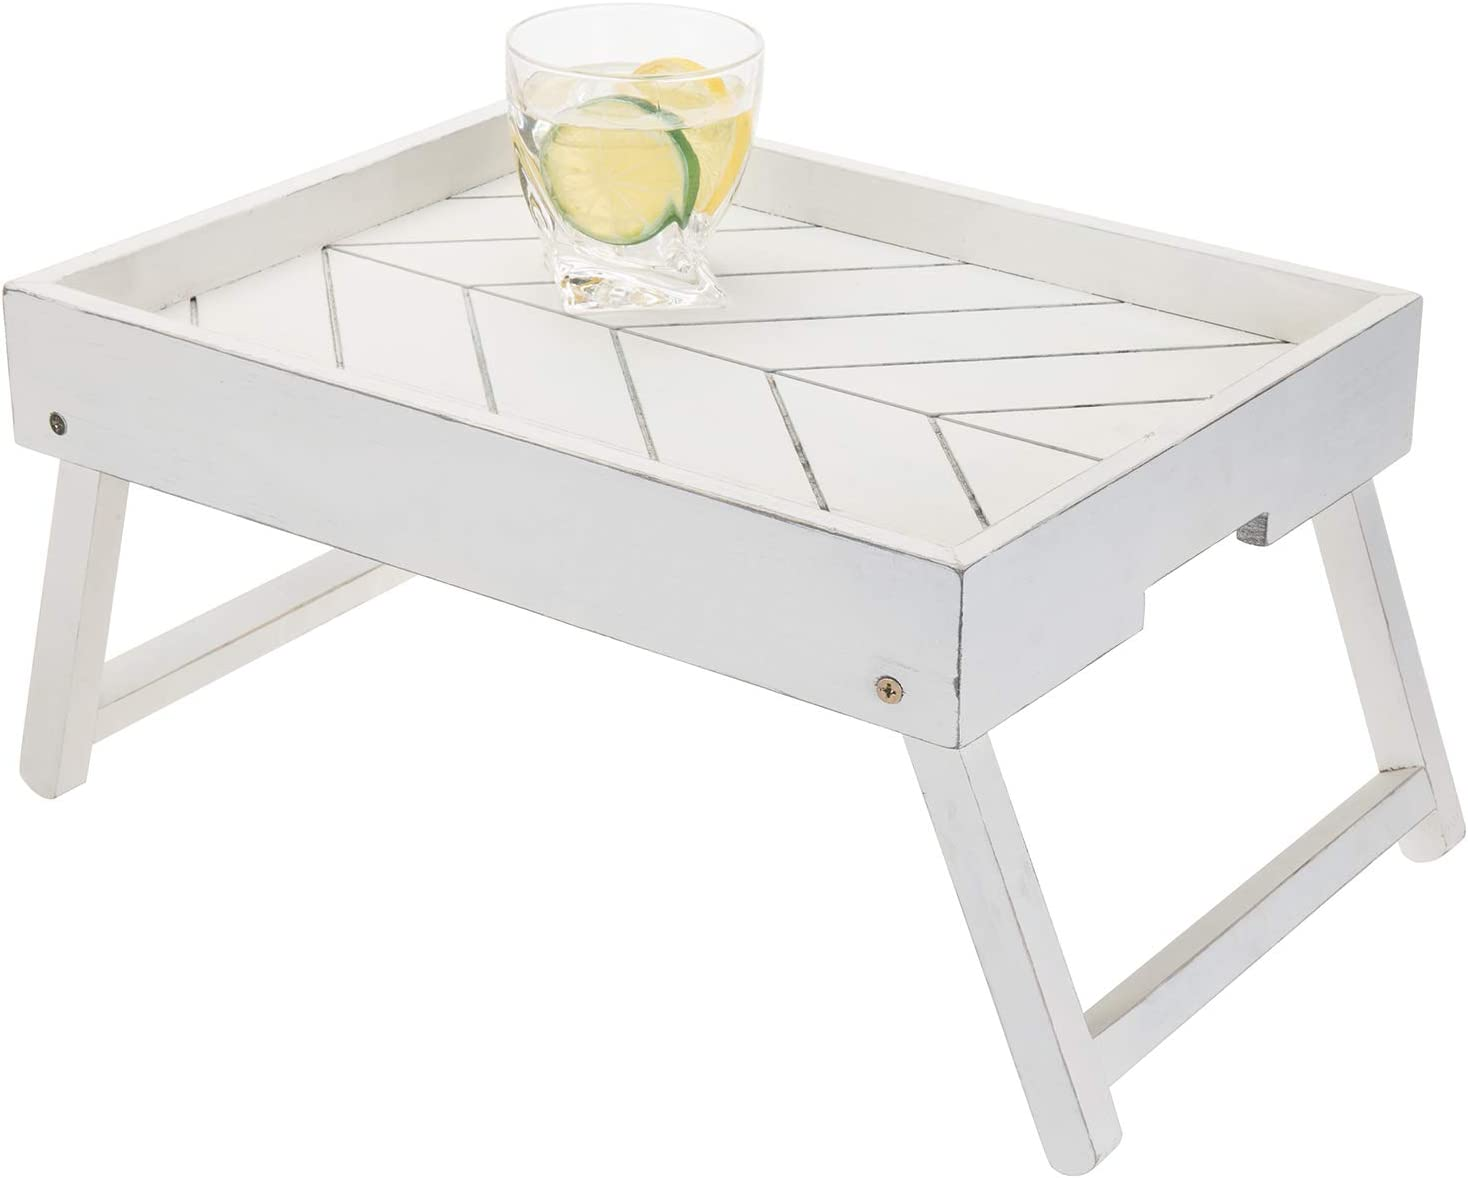 MyGift Vintage White Wood Breakfast Tray with Foldable Legs